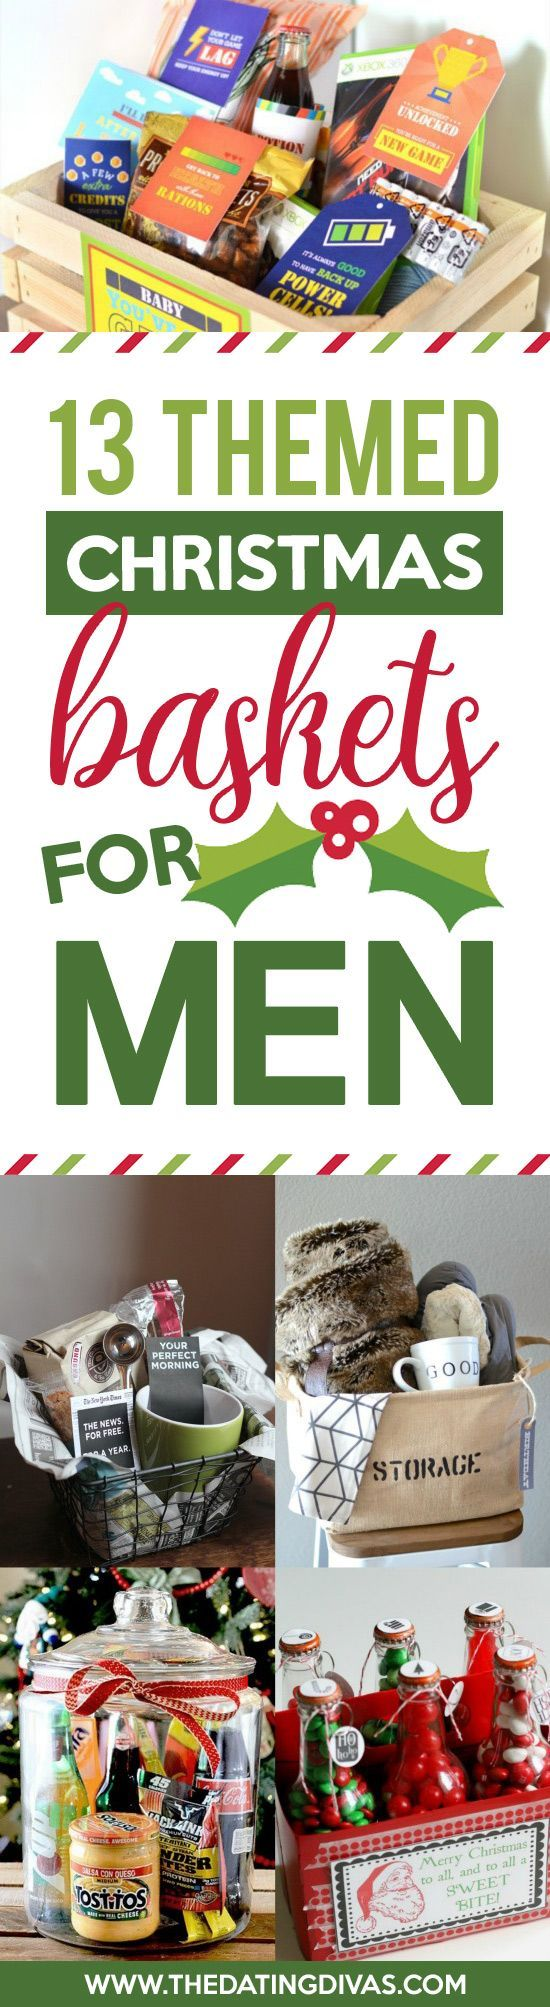 Themed ideas for christmas gifts